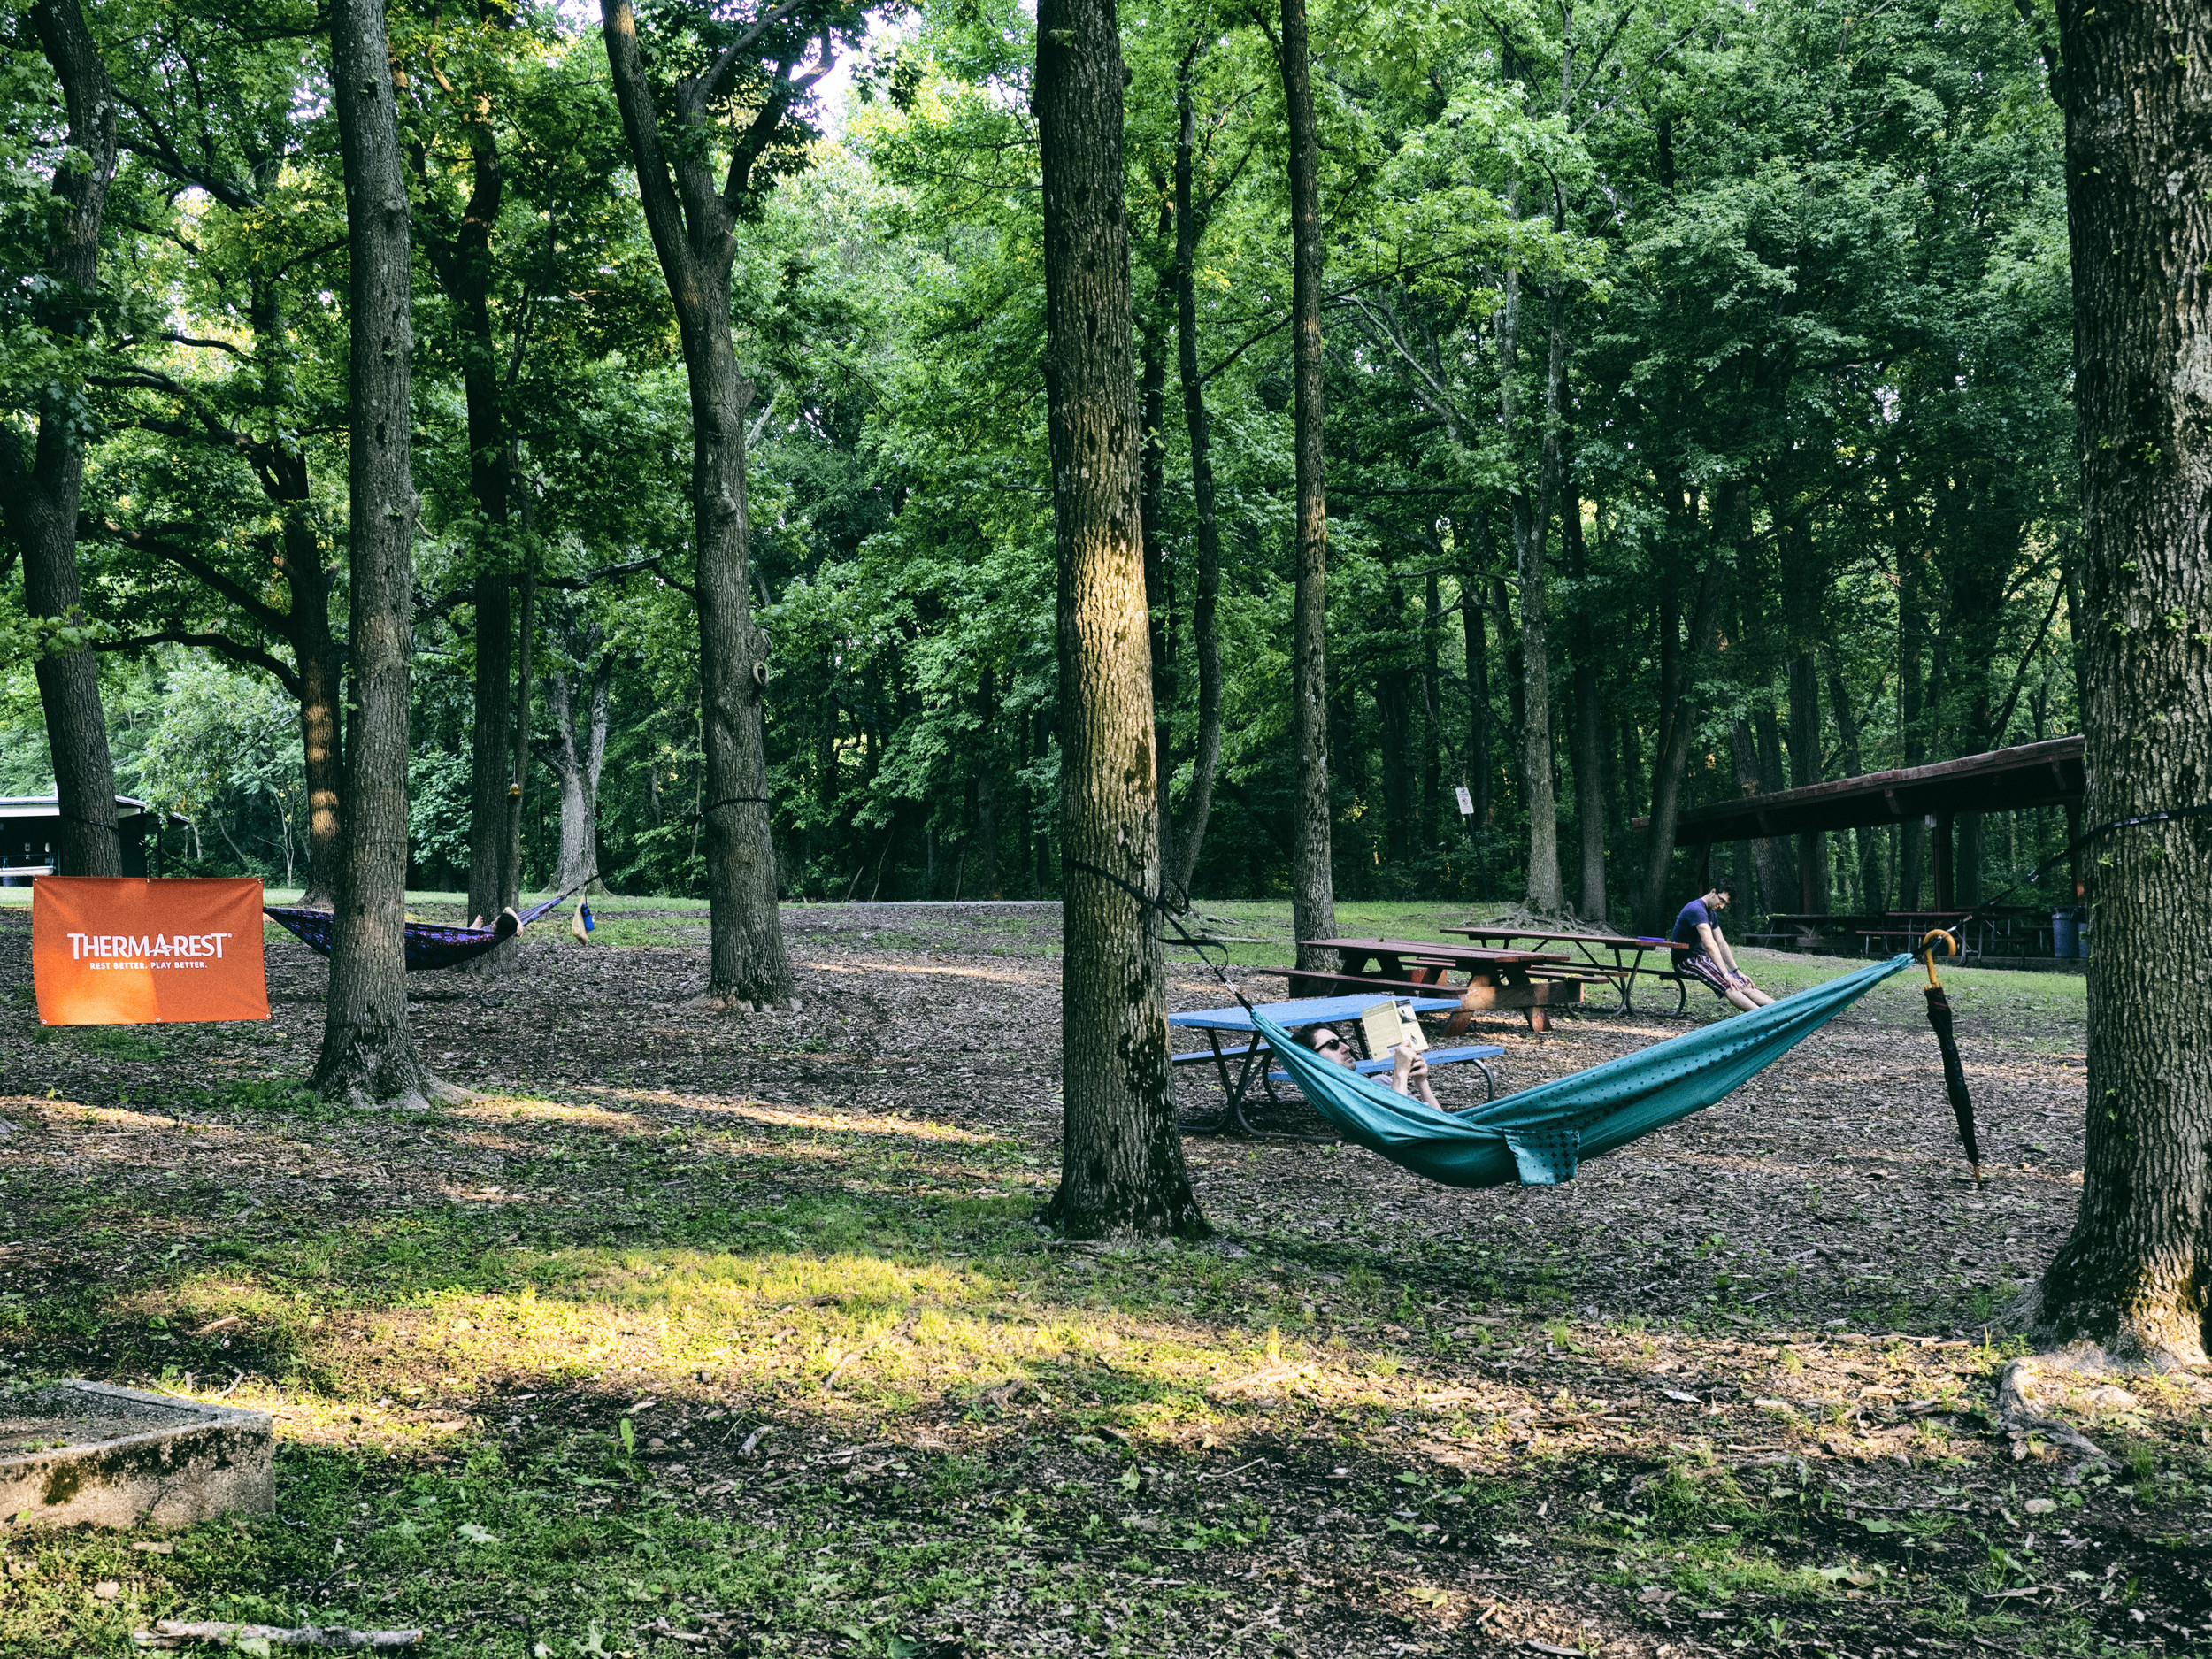 Hammocks offered relaxation at Camp Therm-a-rest. Photo by Tom O'Hare.